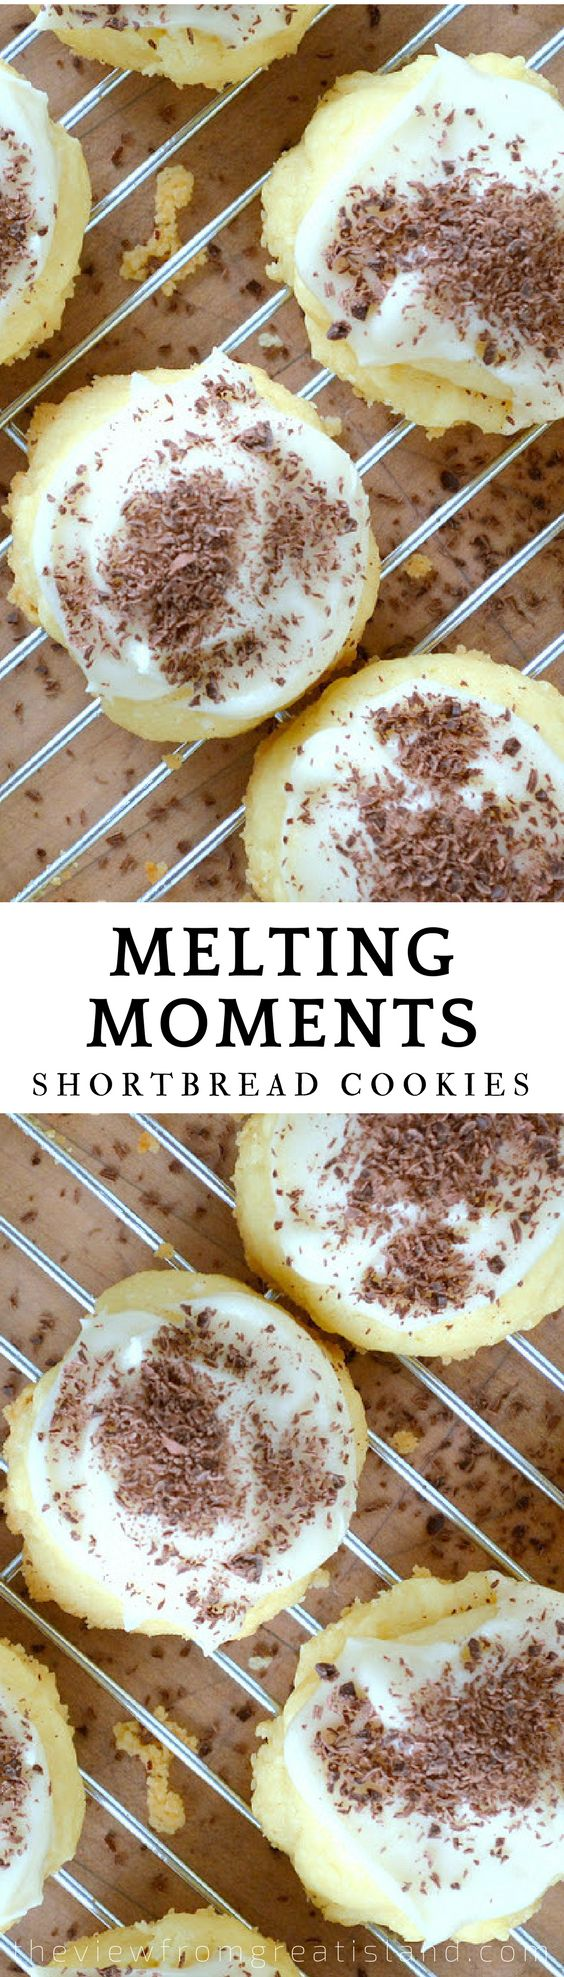 Melting Moments are a classic, melt-in-your-mouth shortbread cookie.  The vintage recipe has been passed down in my family for generations!  Ingredients for the cookies  1 cup (2 sticks) unsalted butter, at room temperature 1/3 cup confectioner's sugar 3/4 cup cornstarch 1 cup all-purpose flour